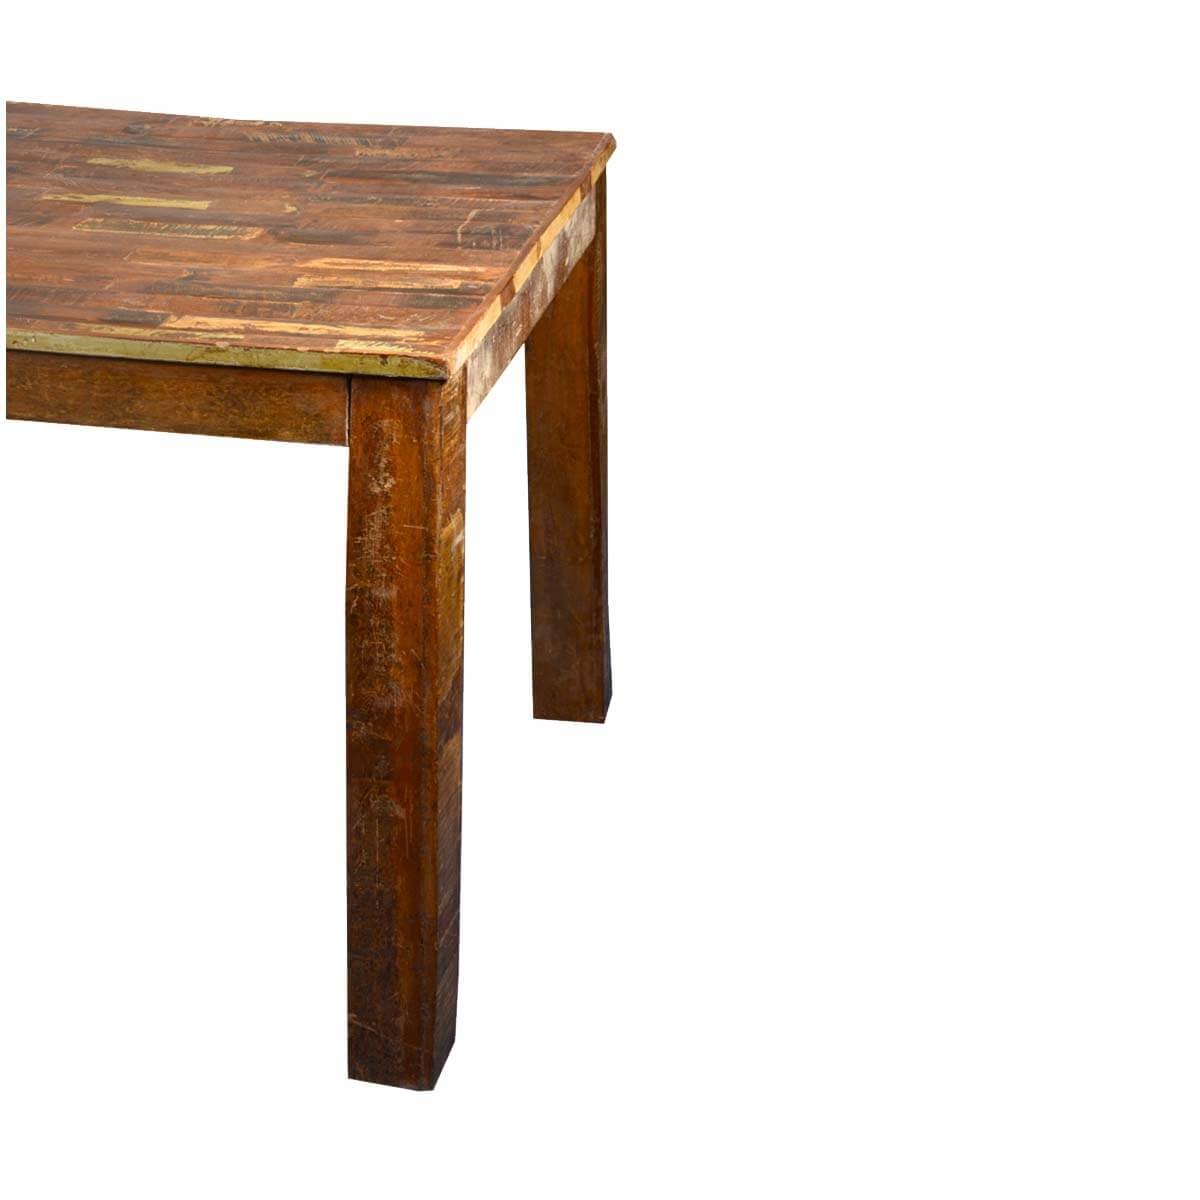 Rustic Parquet Top Reclaimed Wood Dining Table : 52584 from www.sierralivingconcepts.com size 1200 x 1200 jpeg 74kB